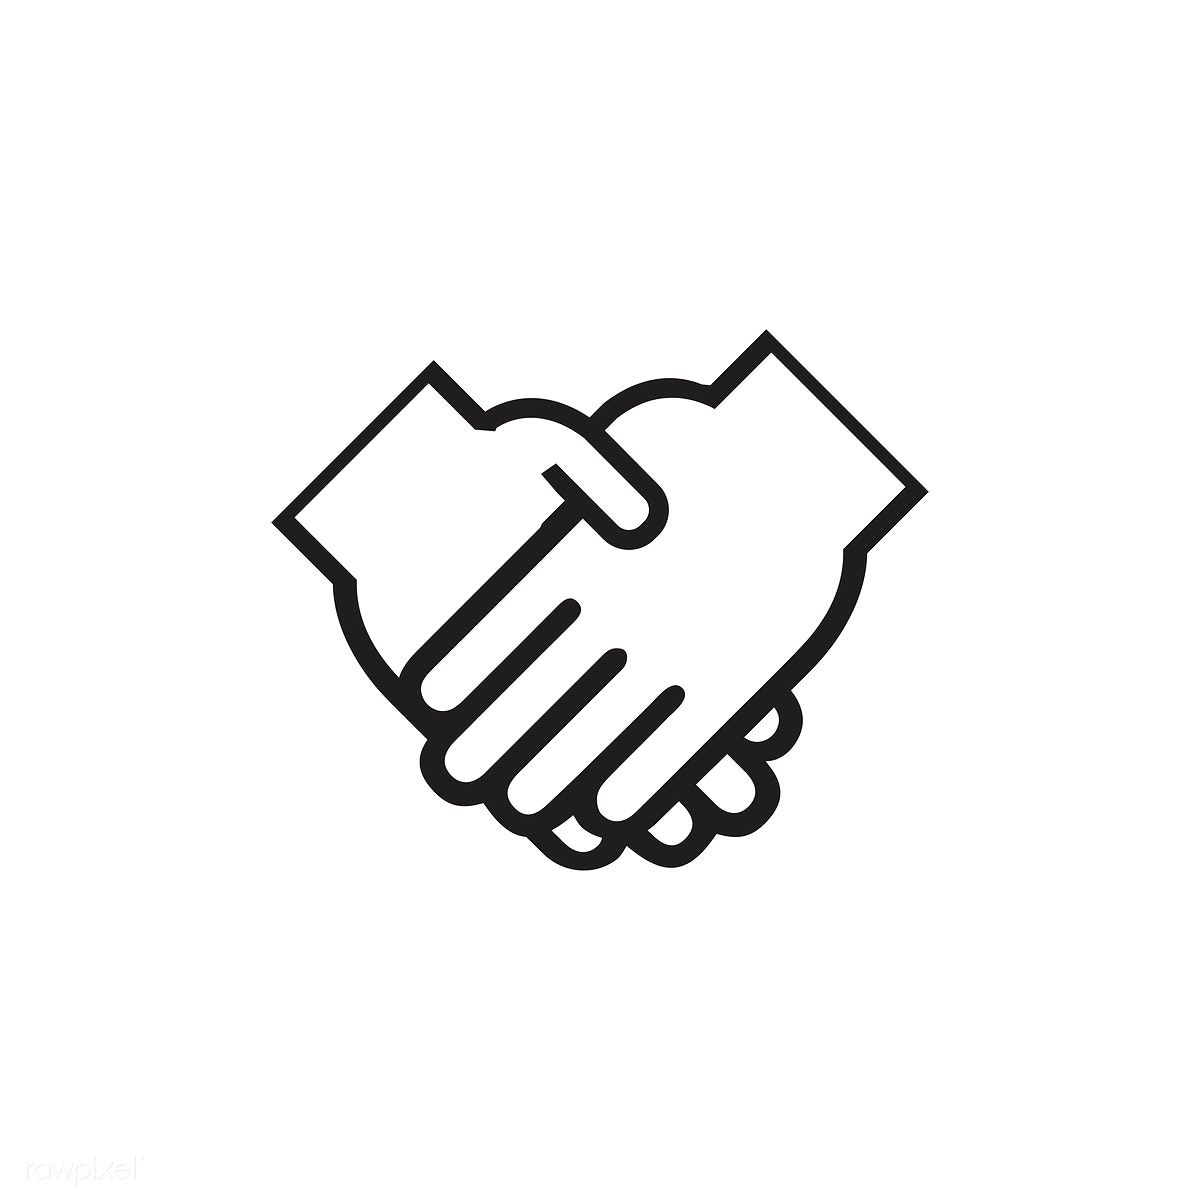 Download free vector of Shaking hands icon vector about.